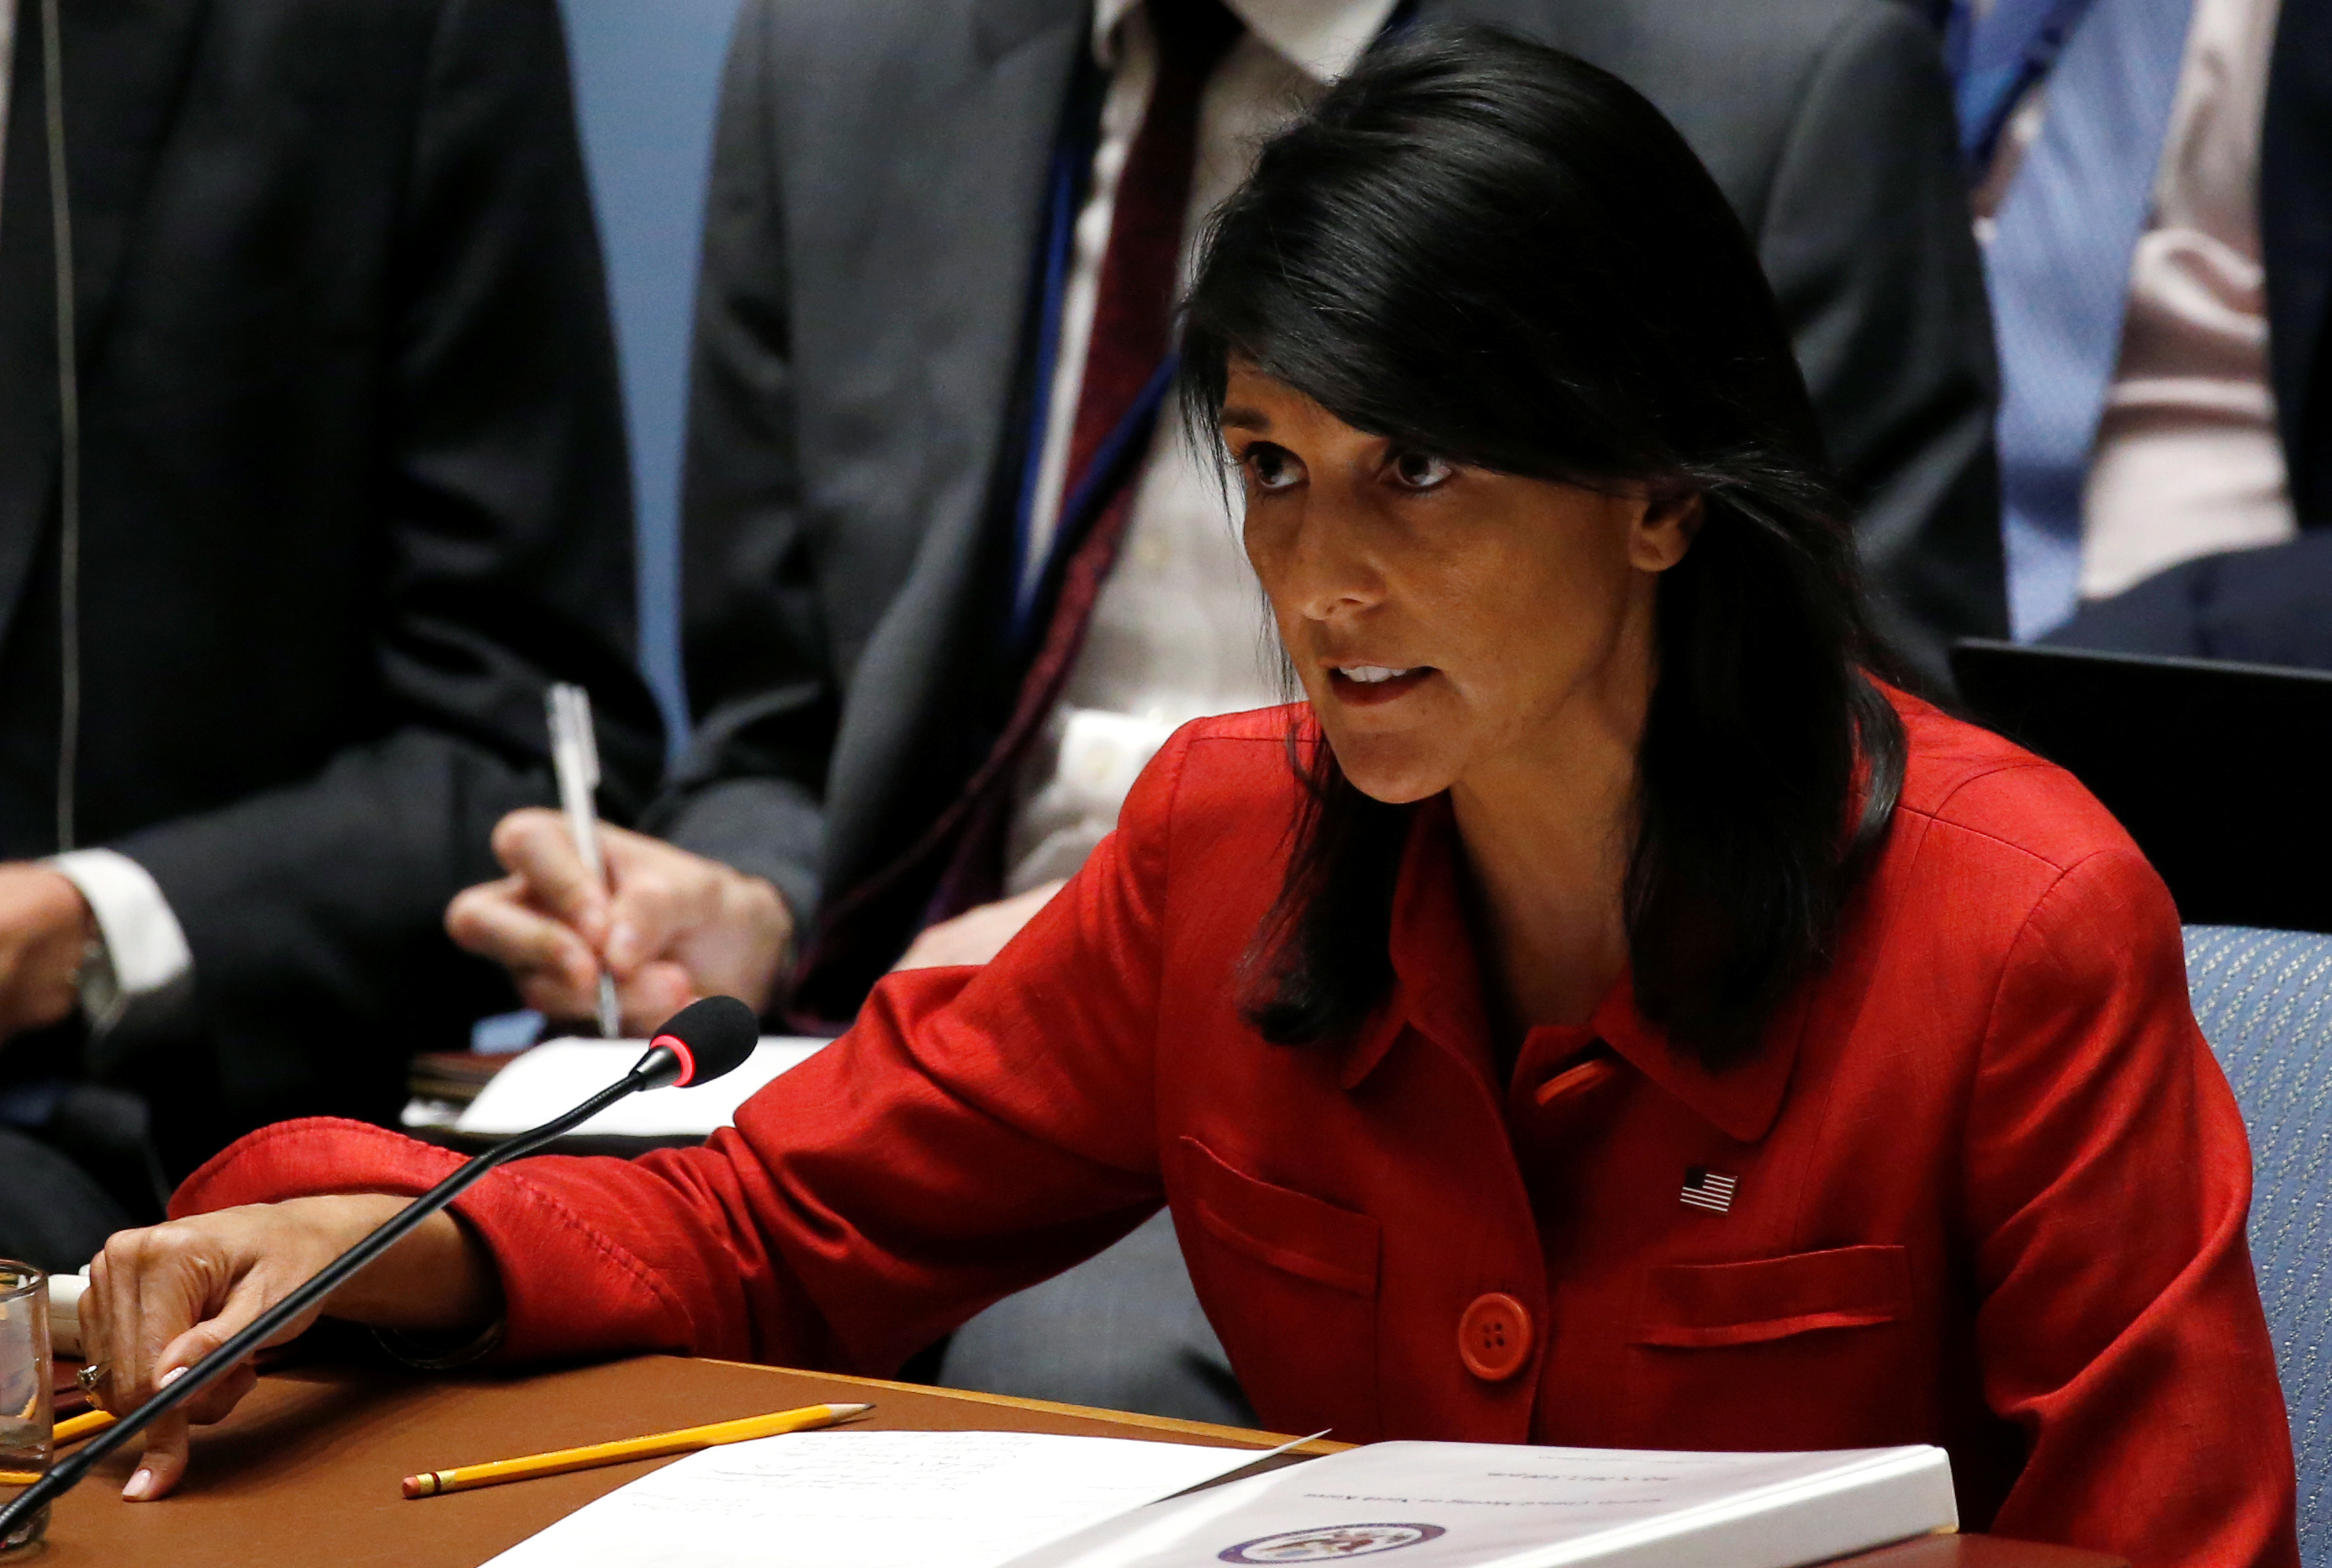 U.S. Ambassador to the United Nations Nikki Haley directs comments to the Russian delegation at the conclusion of a U.N. Security Council meeting to discuss the recent ballistic missile launch by North Korea at U.N. headquarters in New York